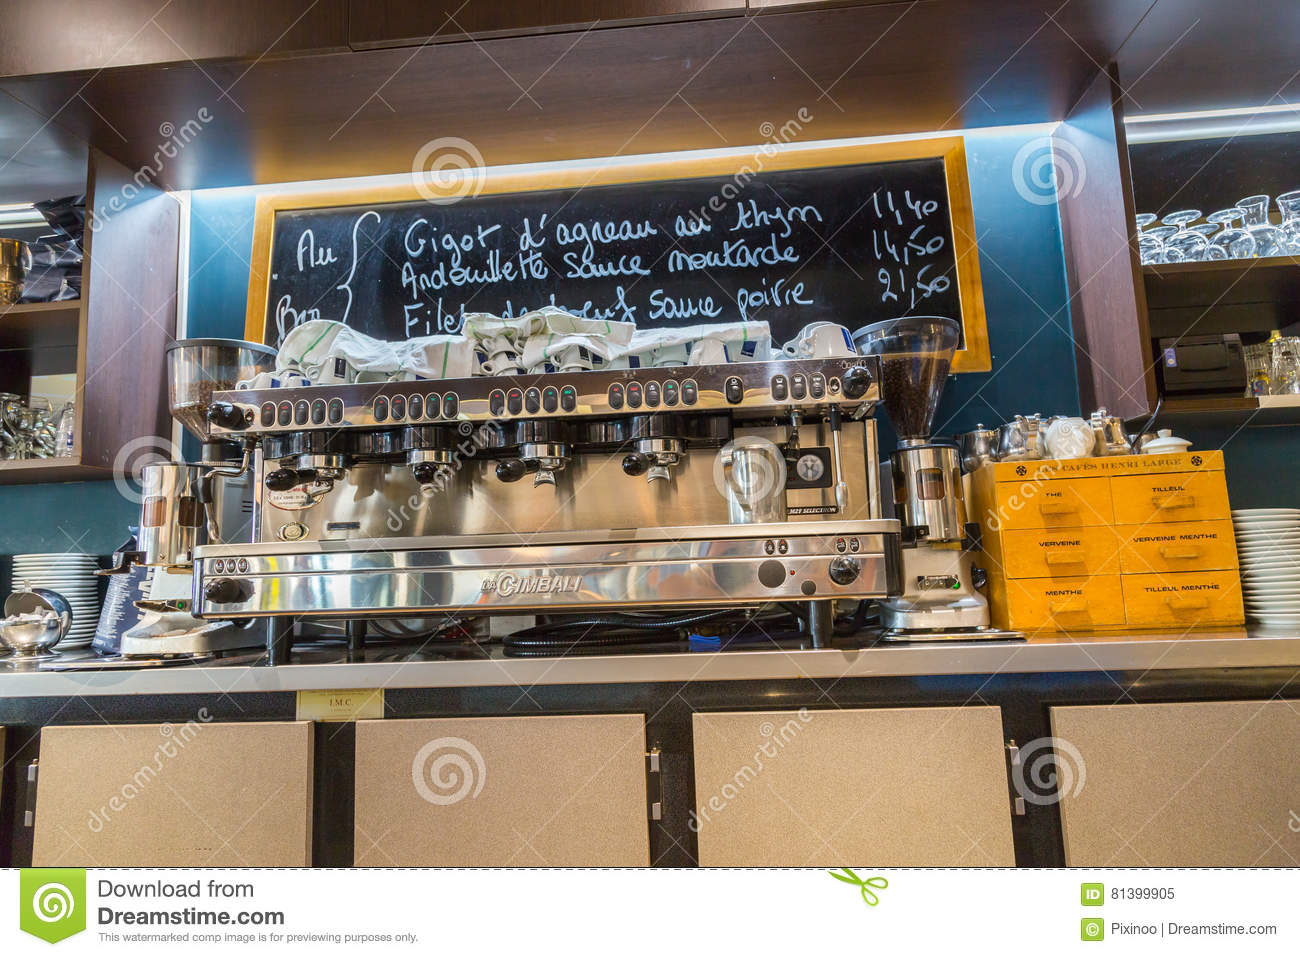 La defense, France - July 17, 2016: inside view on counter of big traditional french restaurant in la defense city, the greatest